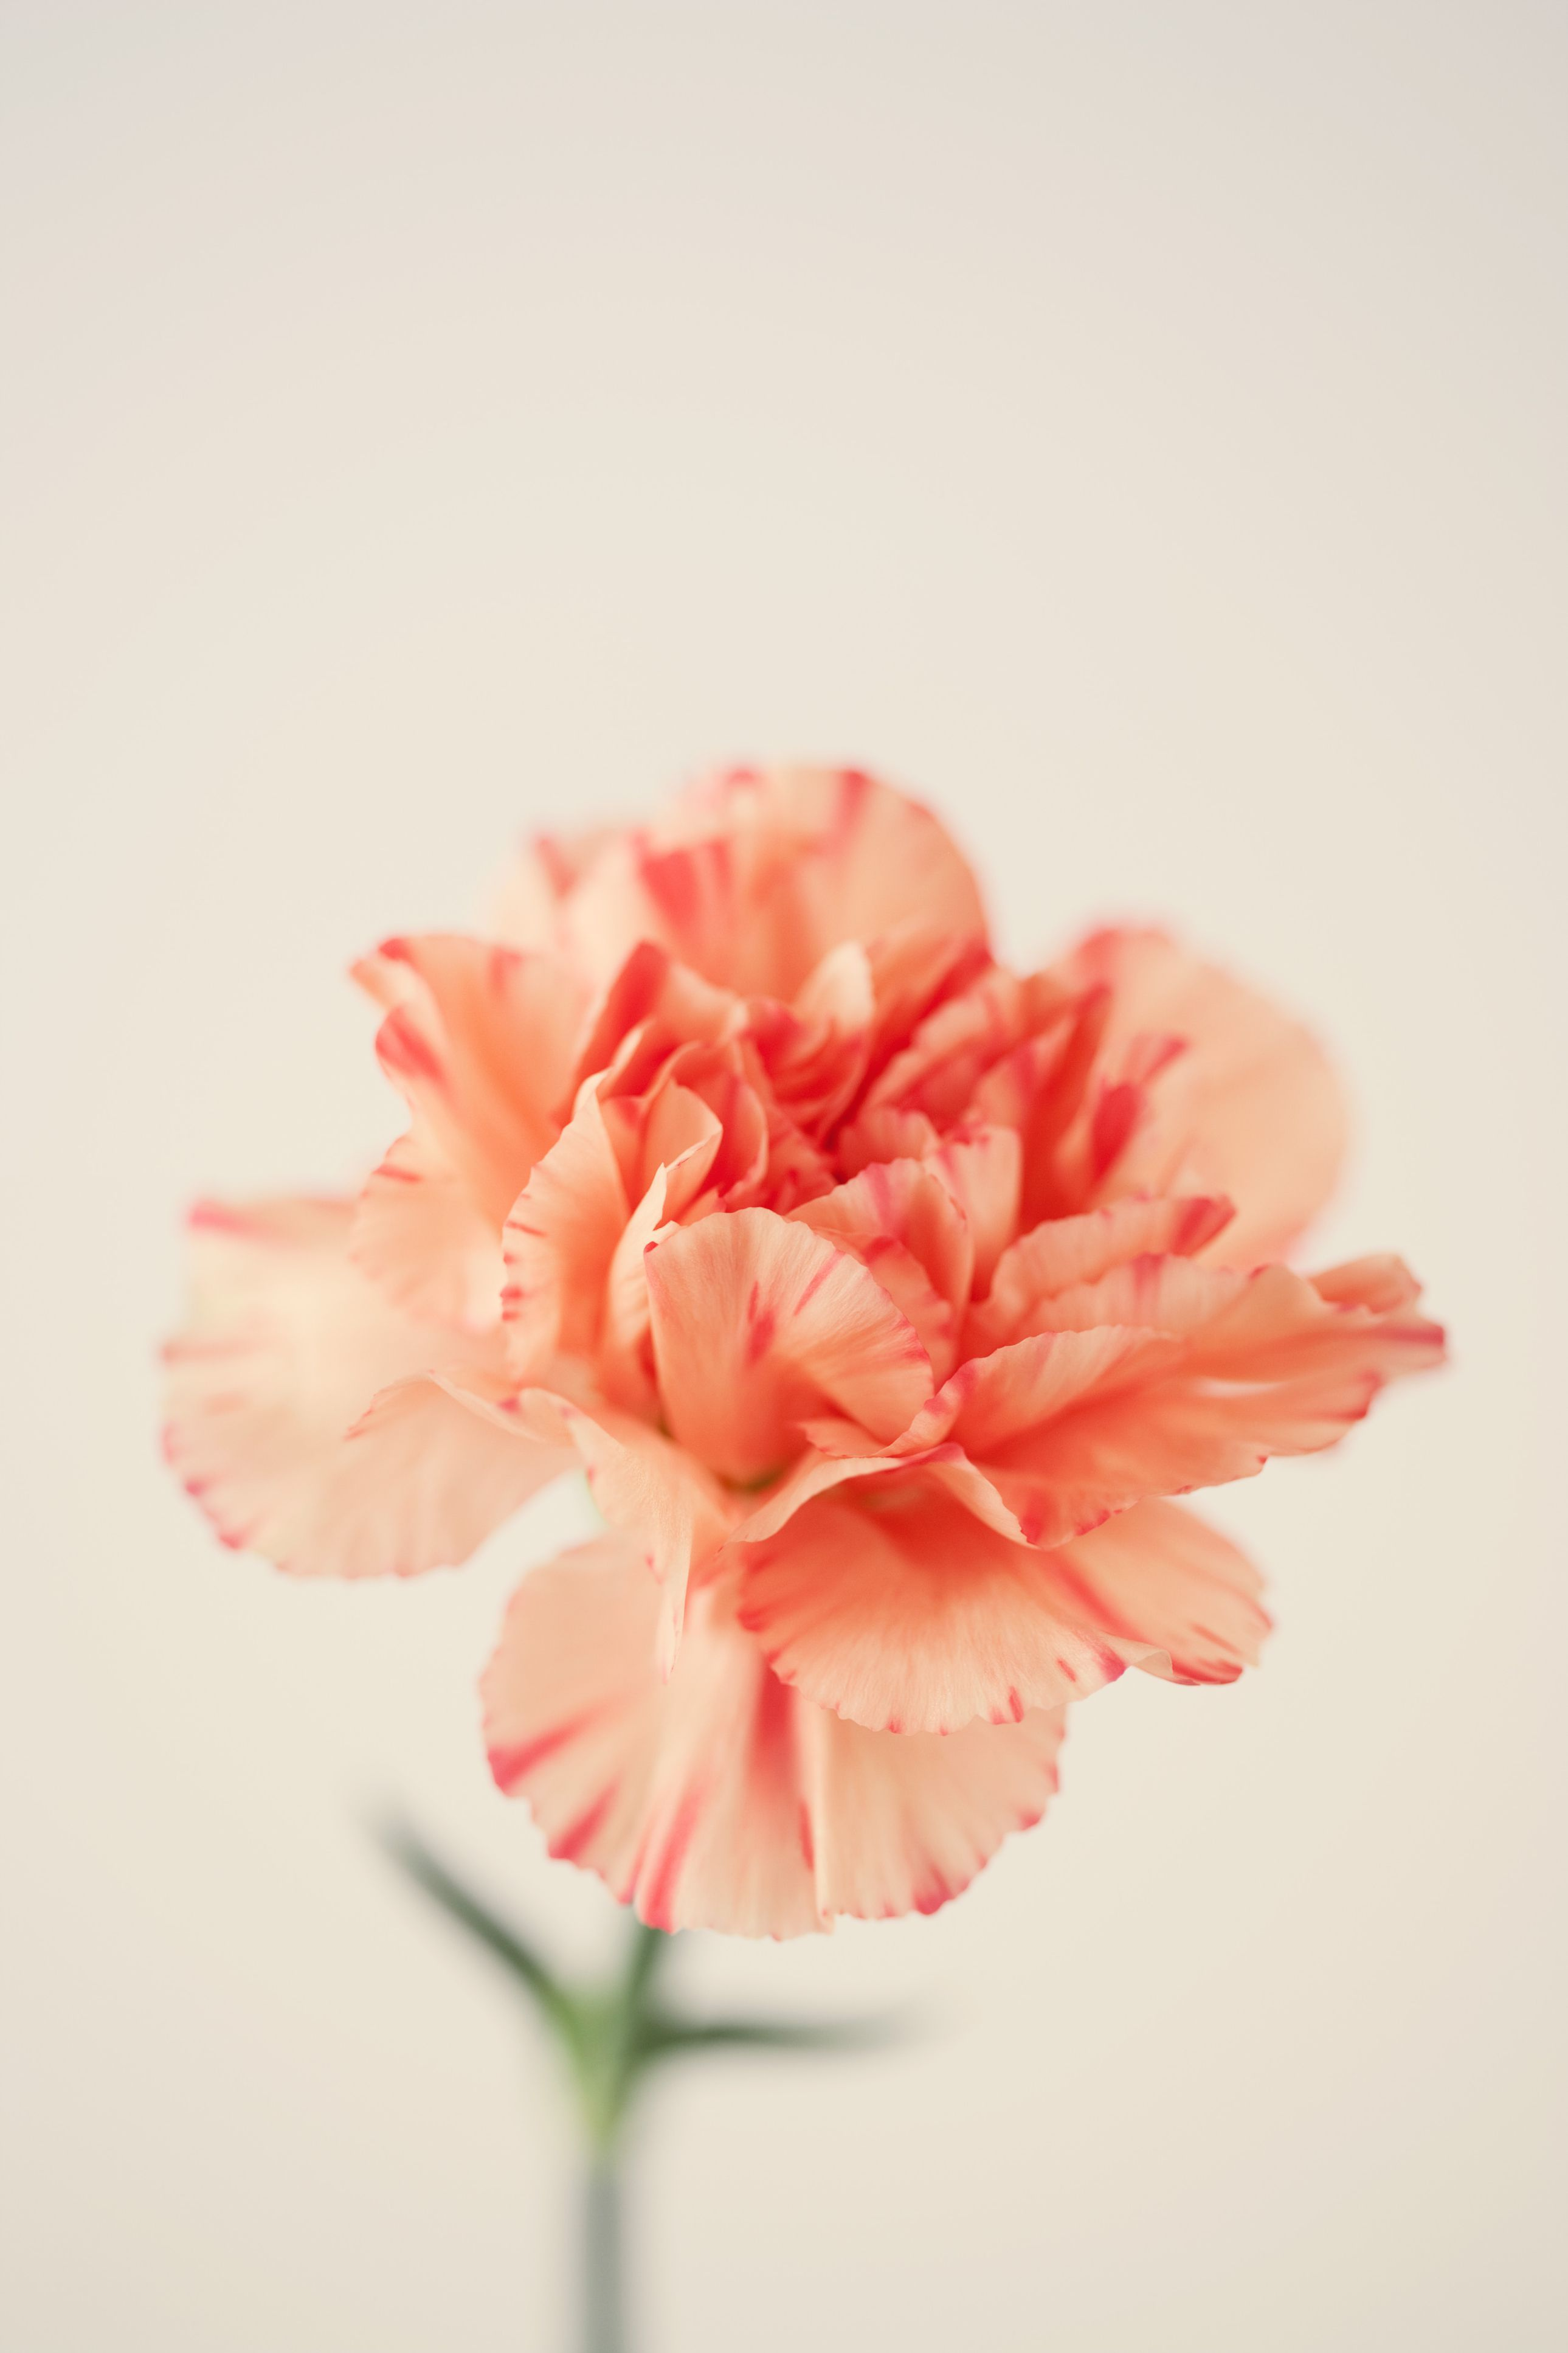 Pin By F Gallery On Flowers Carnation Flower Meaning Flower Meanings Flowers